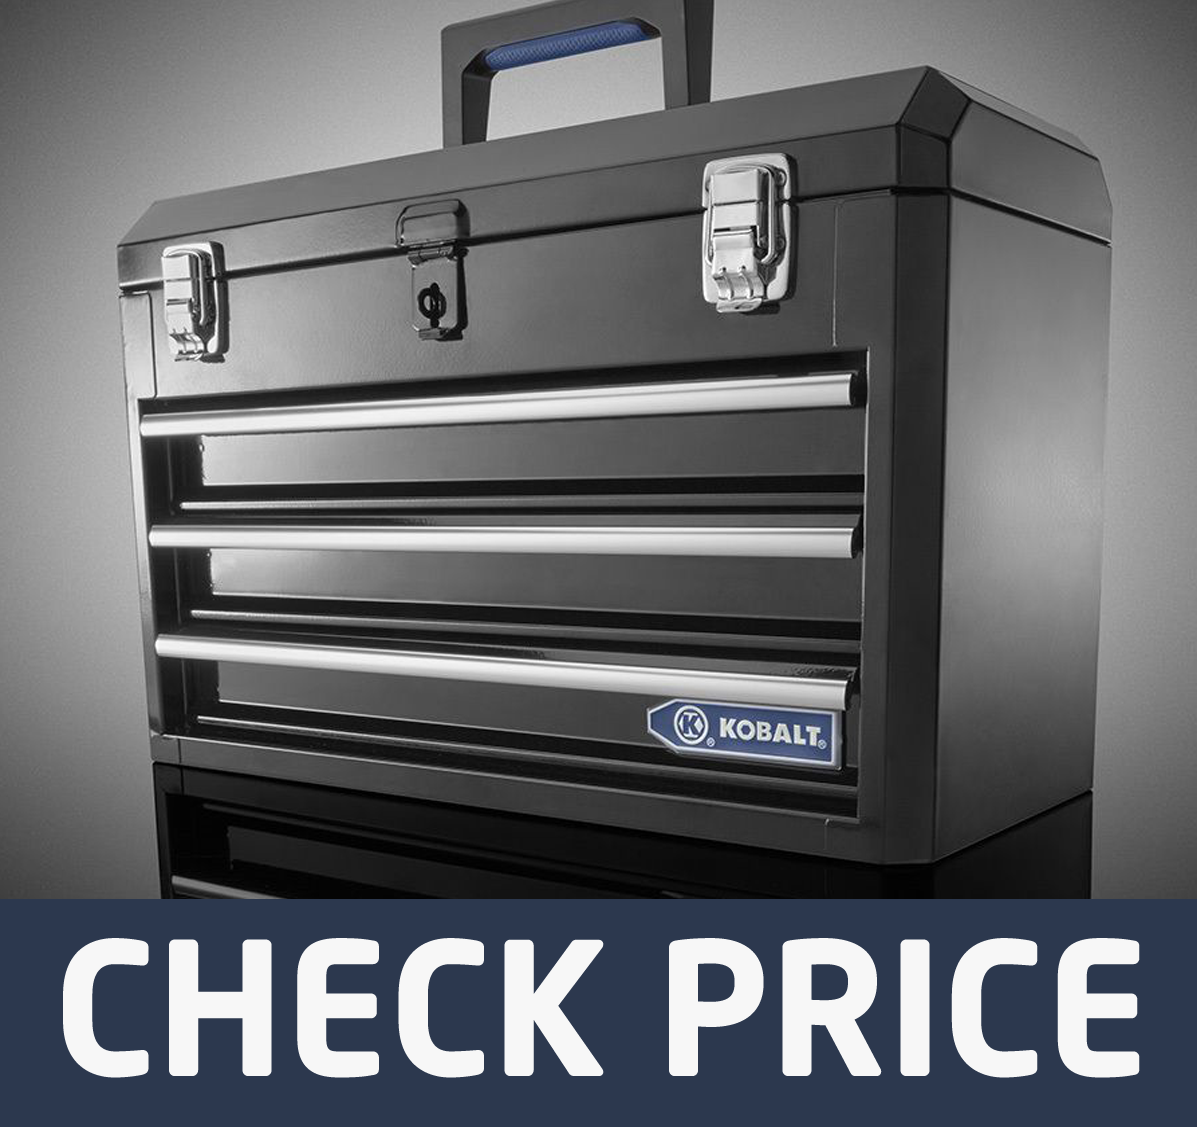 Everything To Know About Kobalt Tool Box - Reviews, Warranty